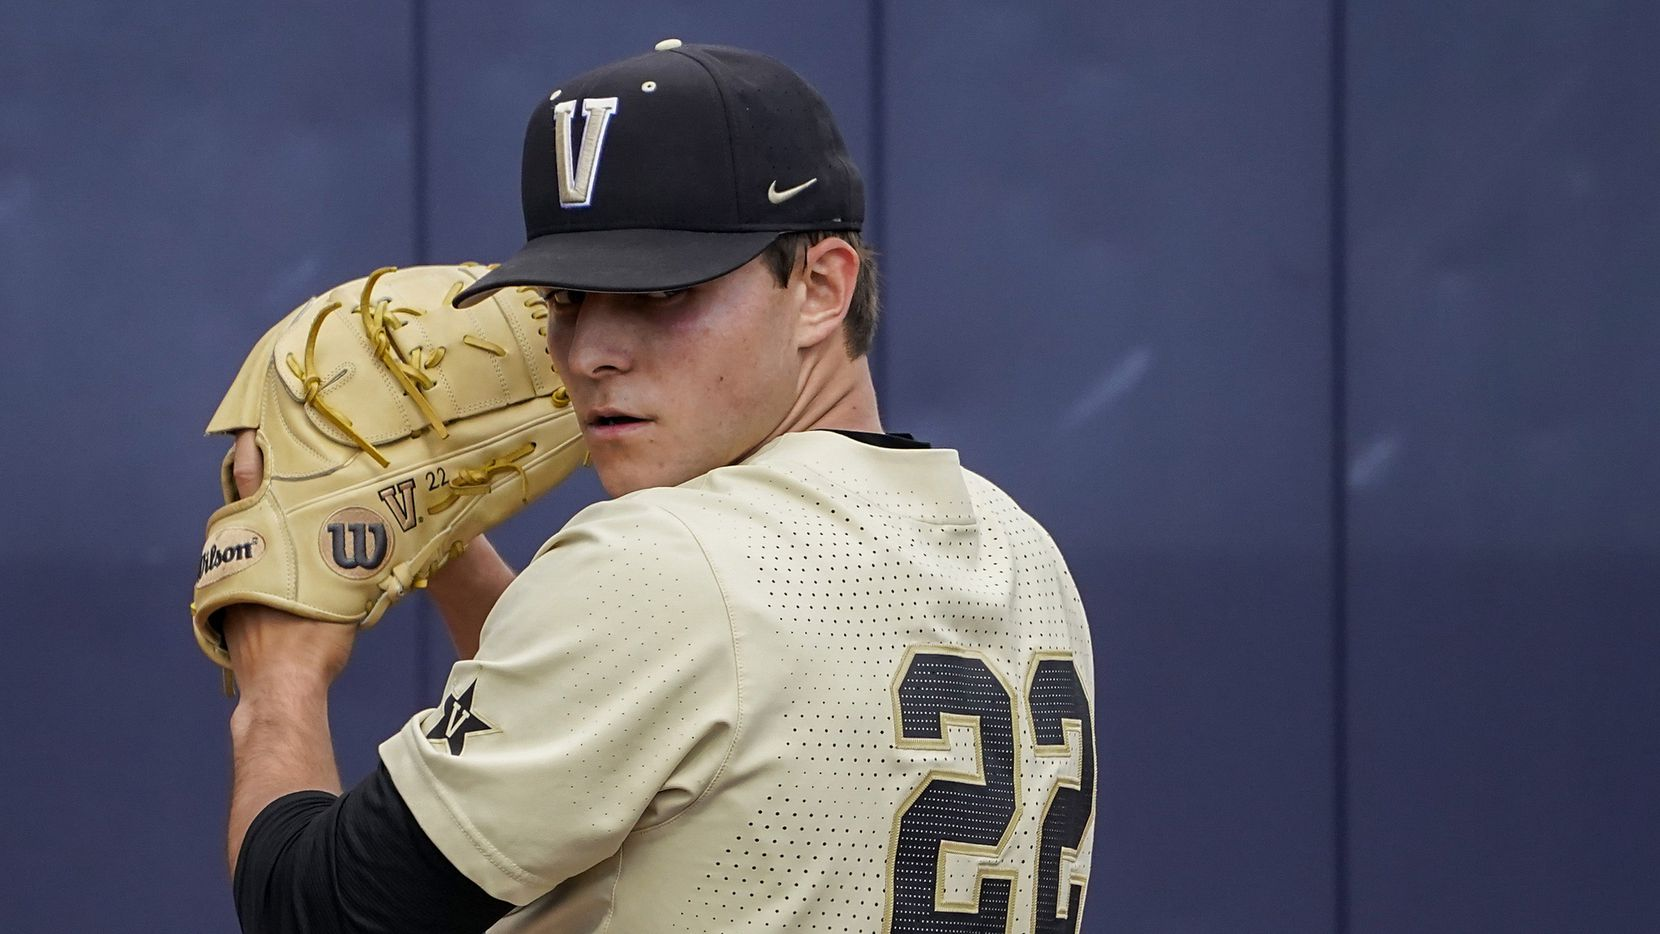 Vanderbilt pitcher Jack Leiter warms up before an NCAA baseball game against Mississippi at Swayze Field on Saturday, May 15, 2021, in Oxford, Miss.